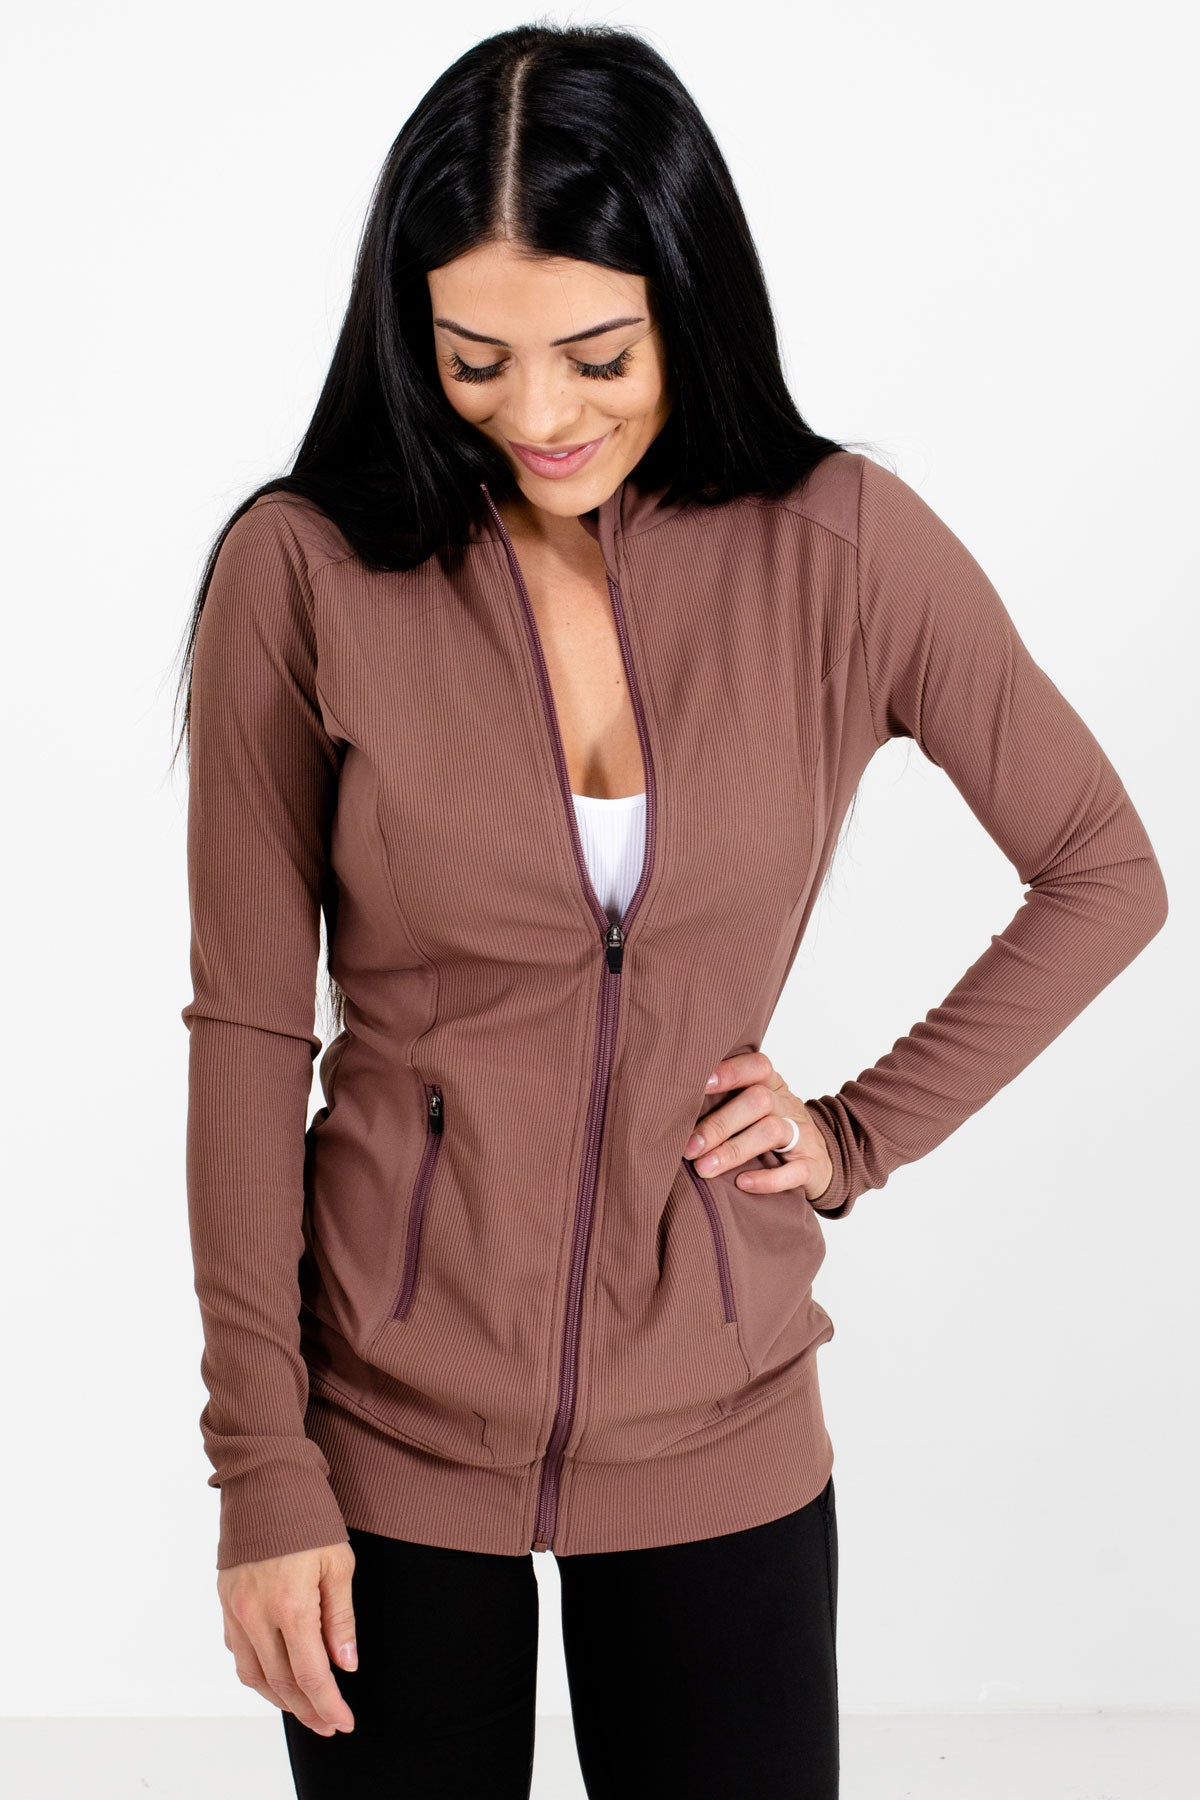 Mauve High-Quality Ribbed Material Boutique Active Jackets for Women